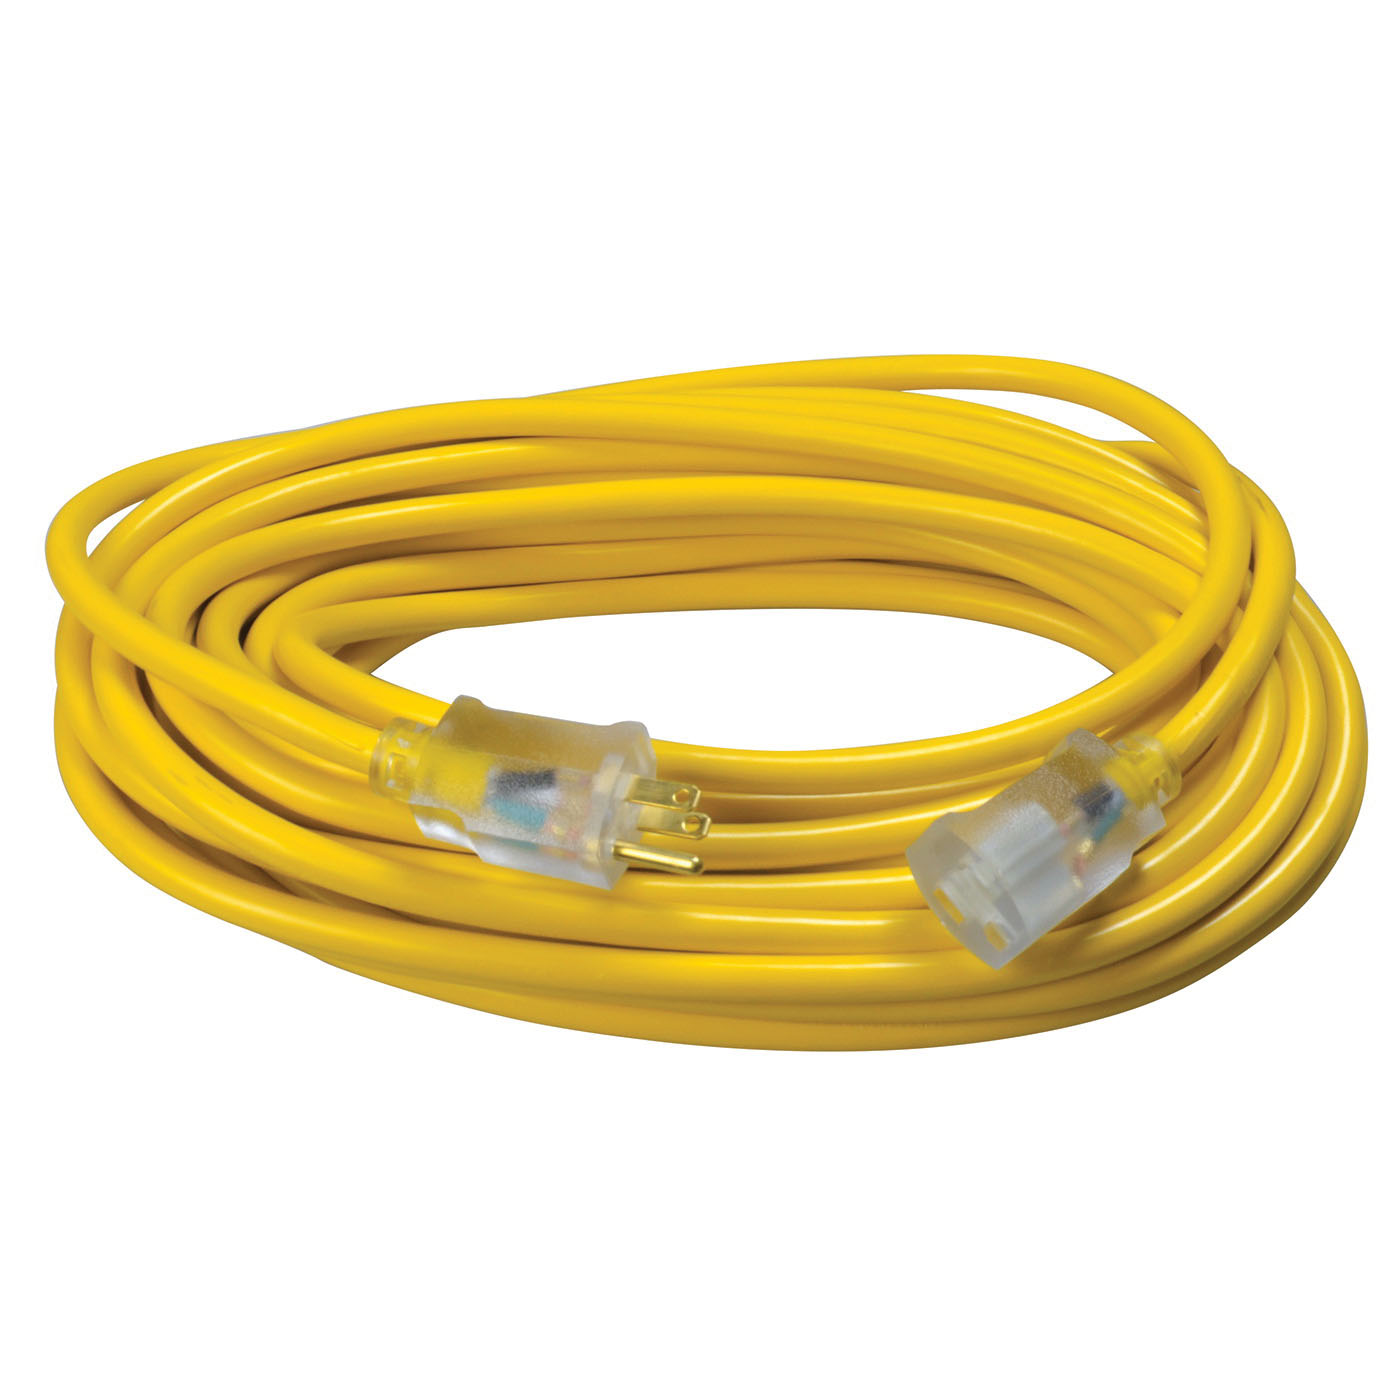 Southwire® 2588SW0002 Yellow Heavy Duty Extension Cord, 50 ft